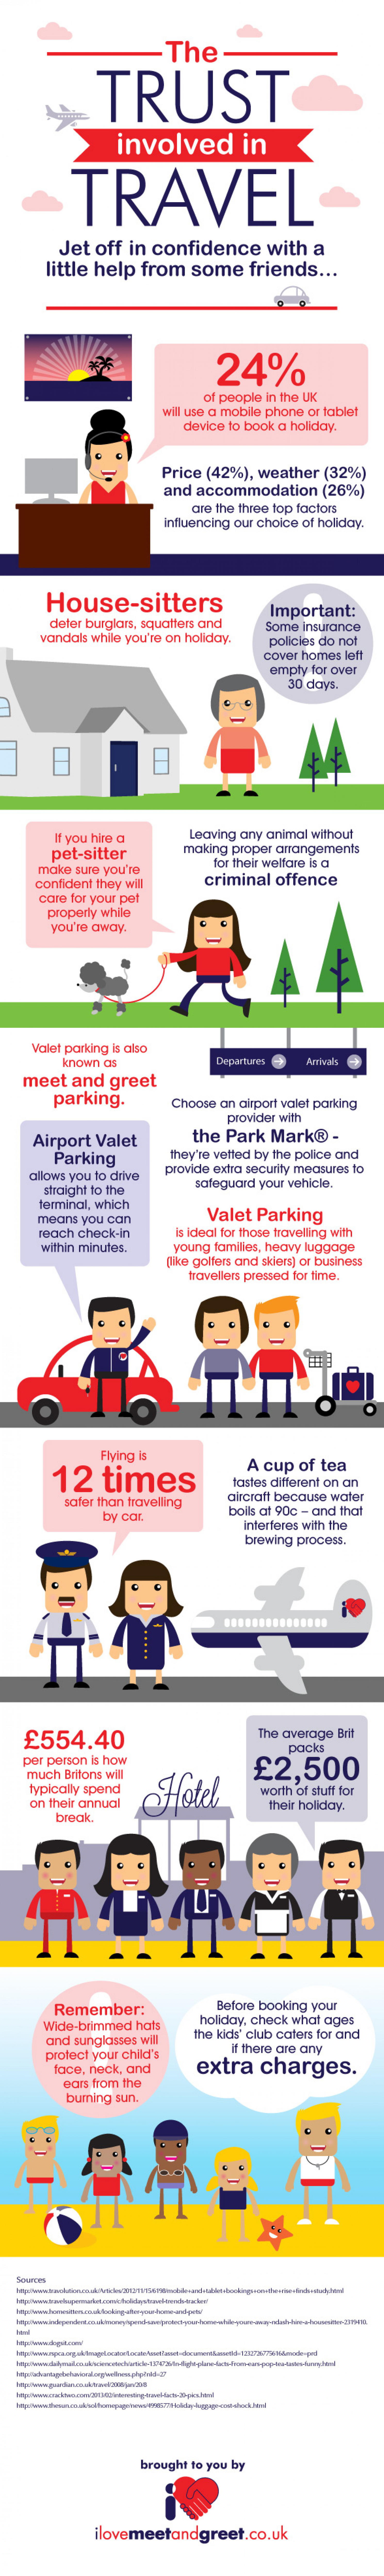 The Trust Involved in Travel Infographic